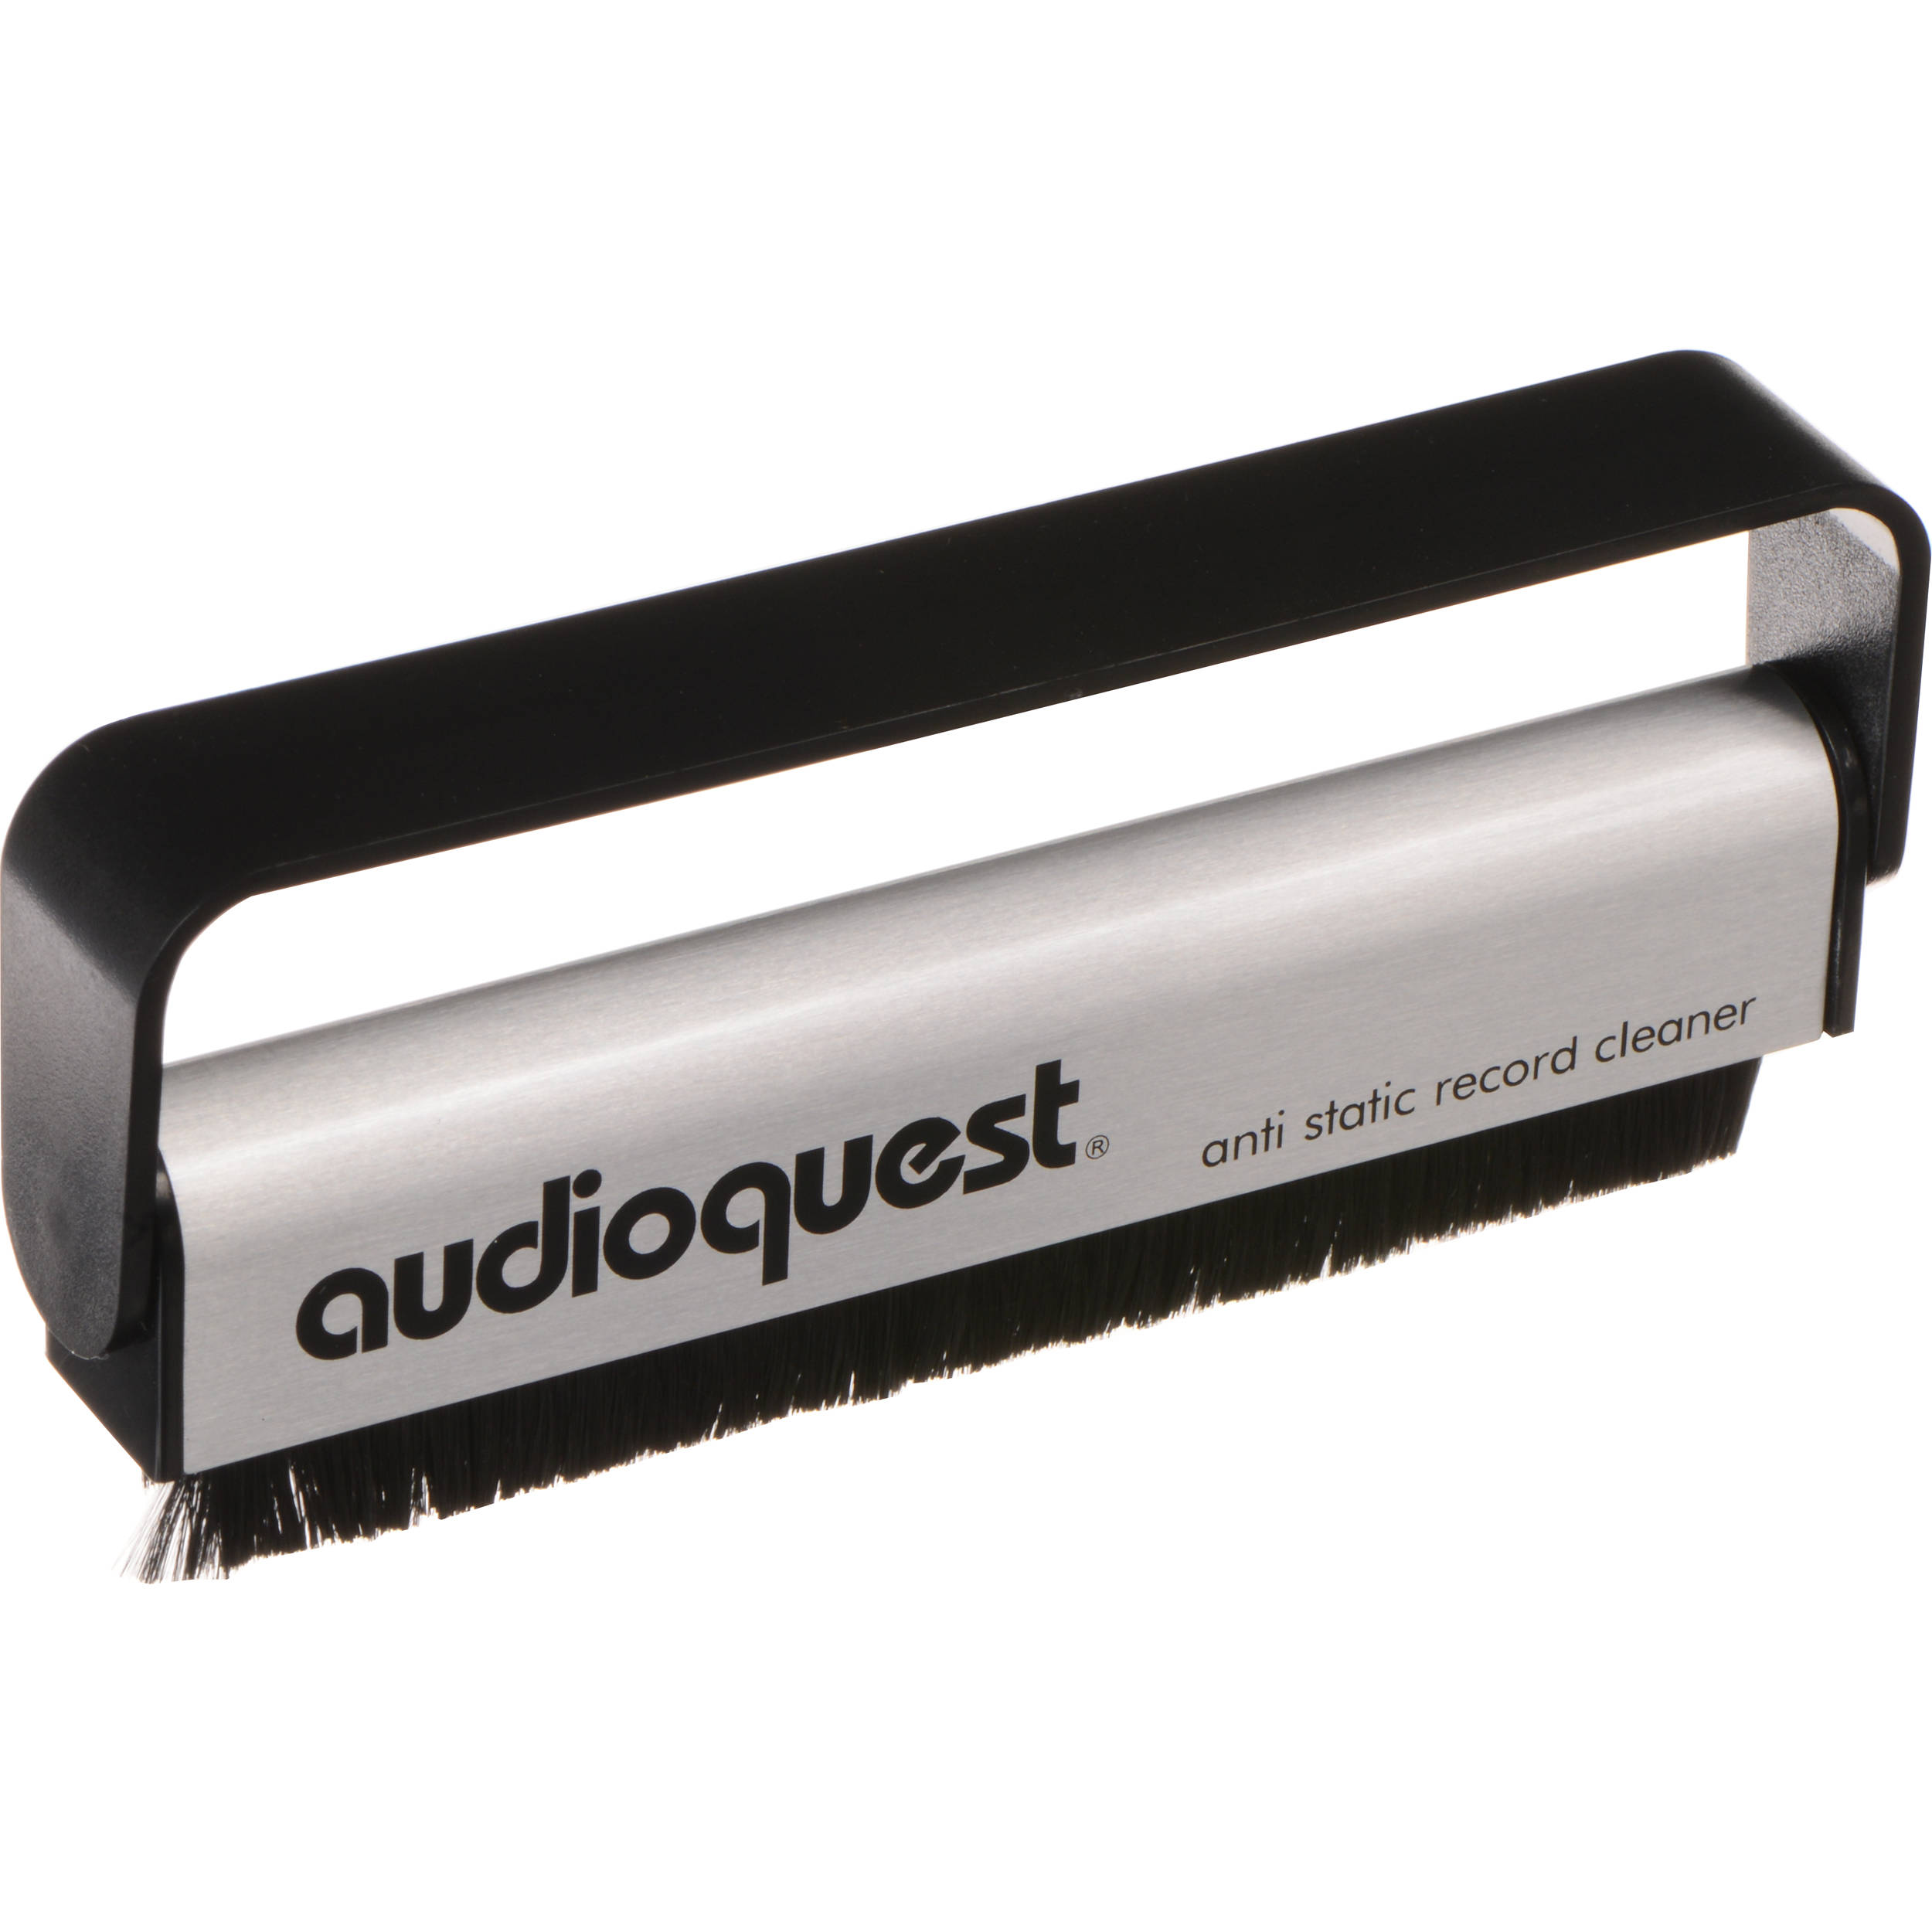 Audioquest Anti Static Record Cleaner Brush Recbrush B Amp H Photo